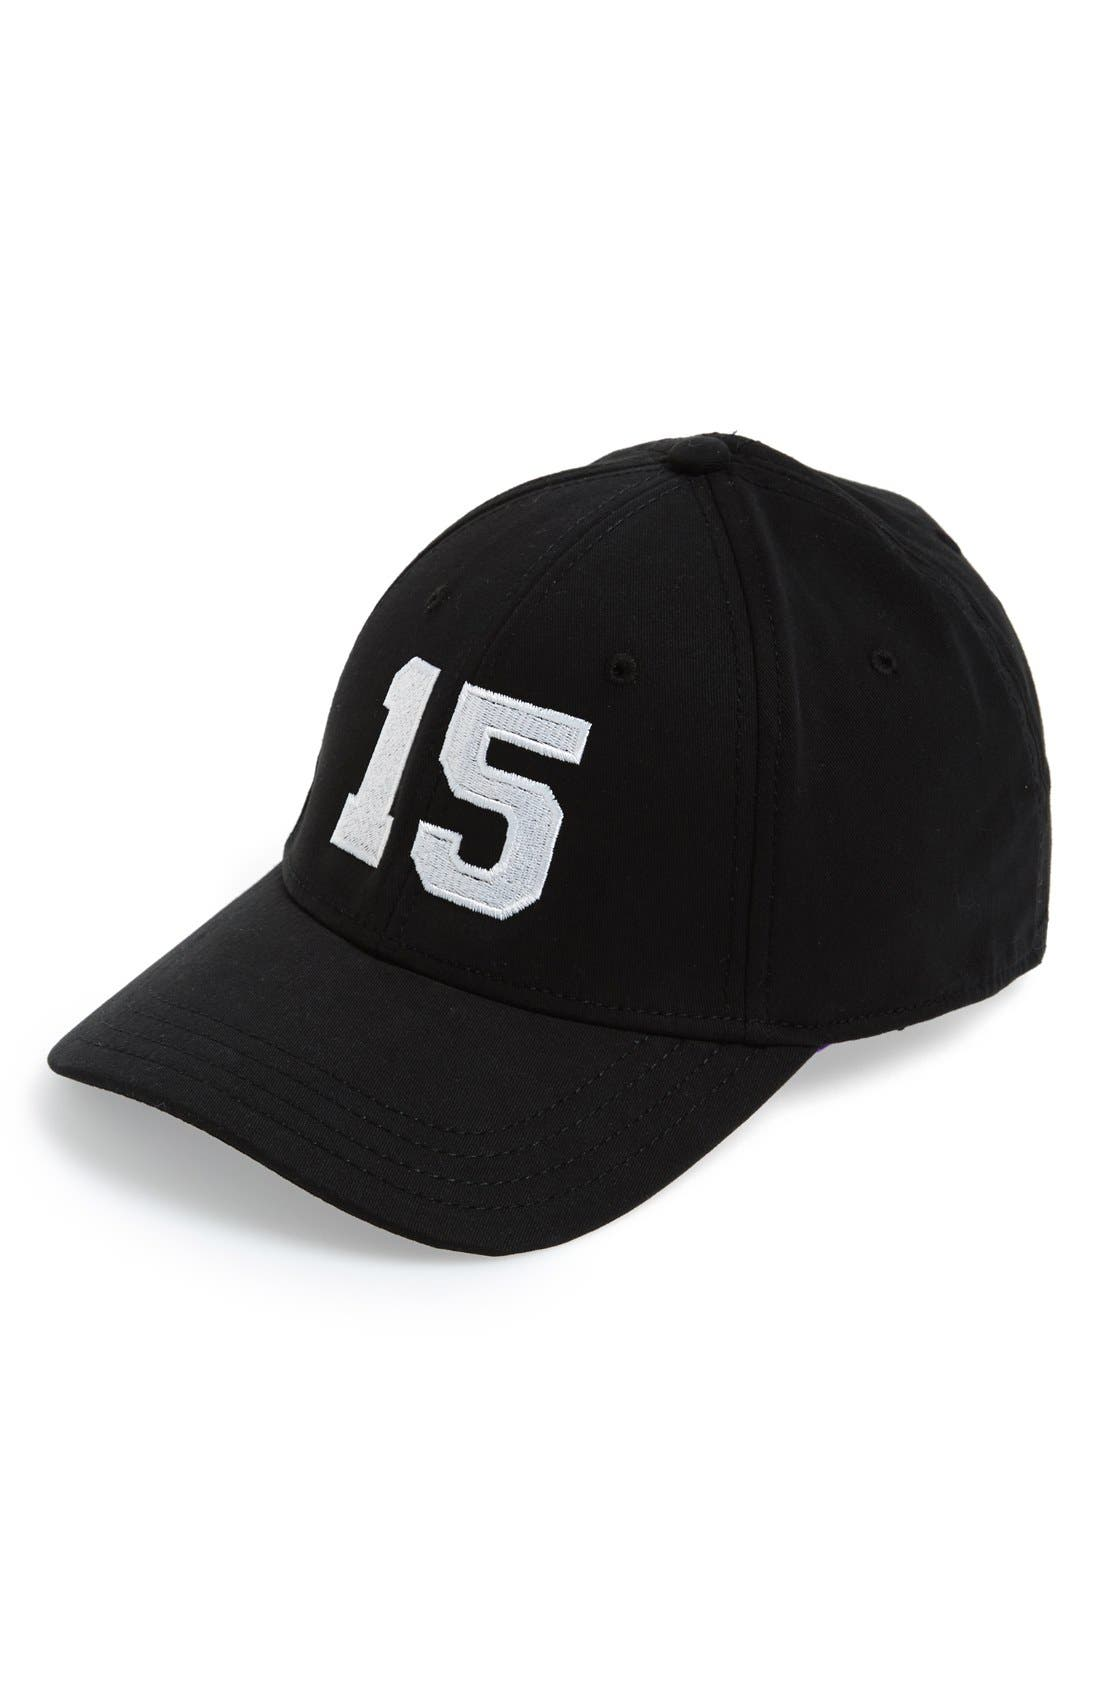 Main Image - Gents 'Number 15' Baseball Cap